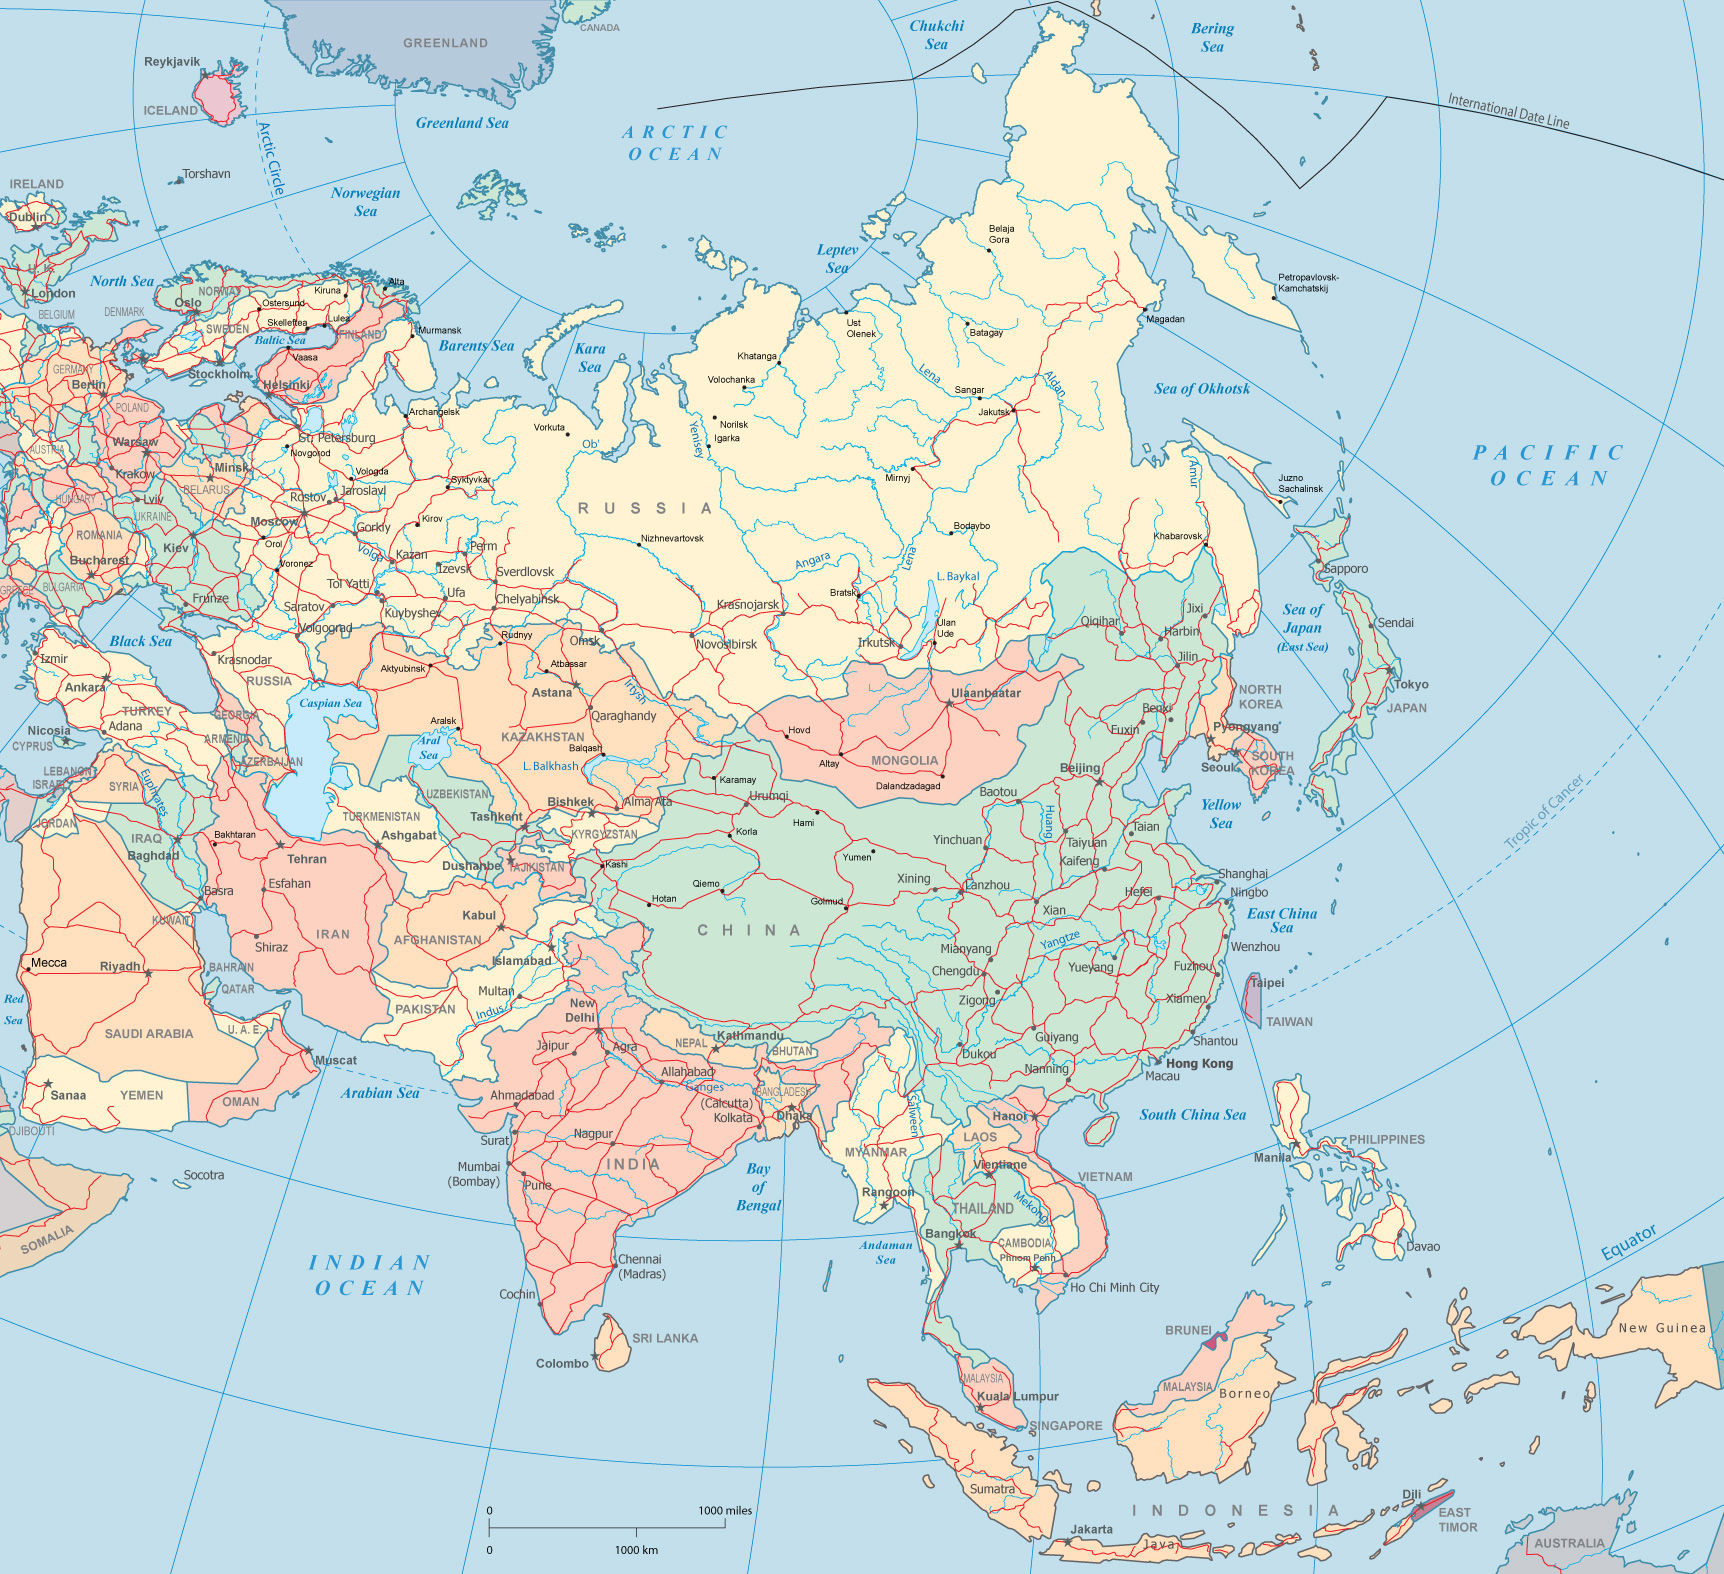 Map Of Asia Japan And China.Map Asia India China Japan